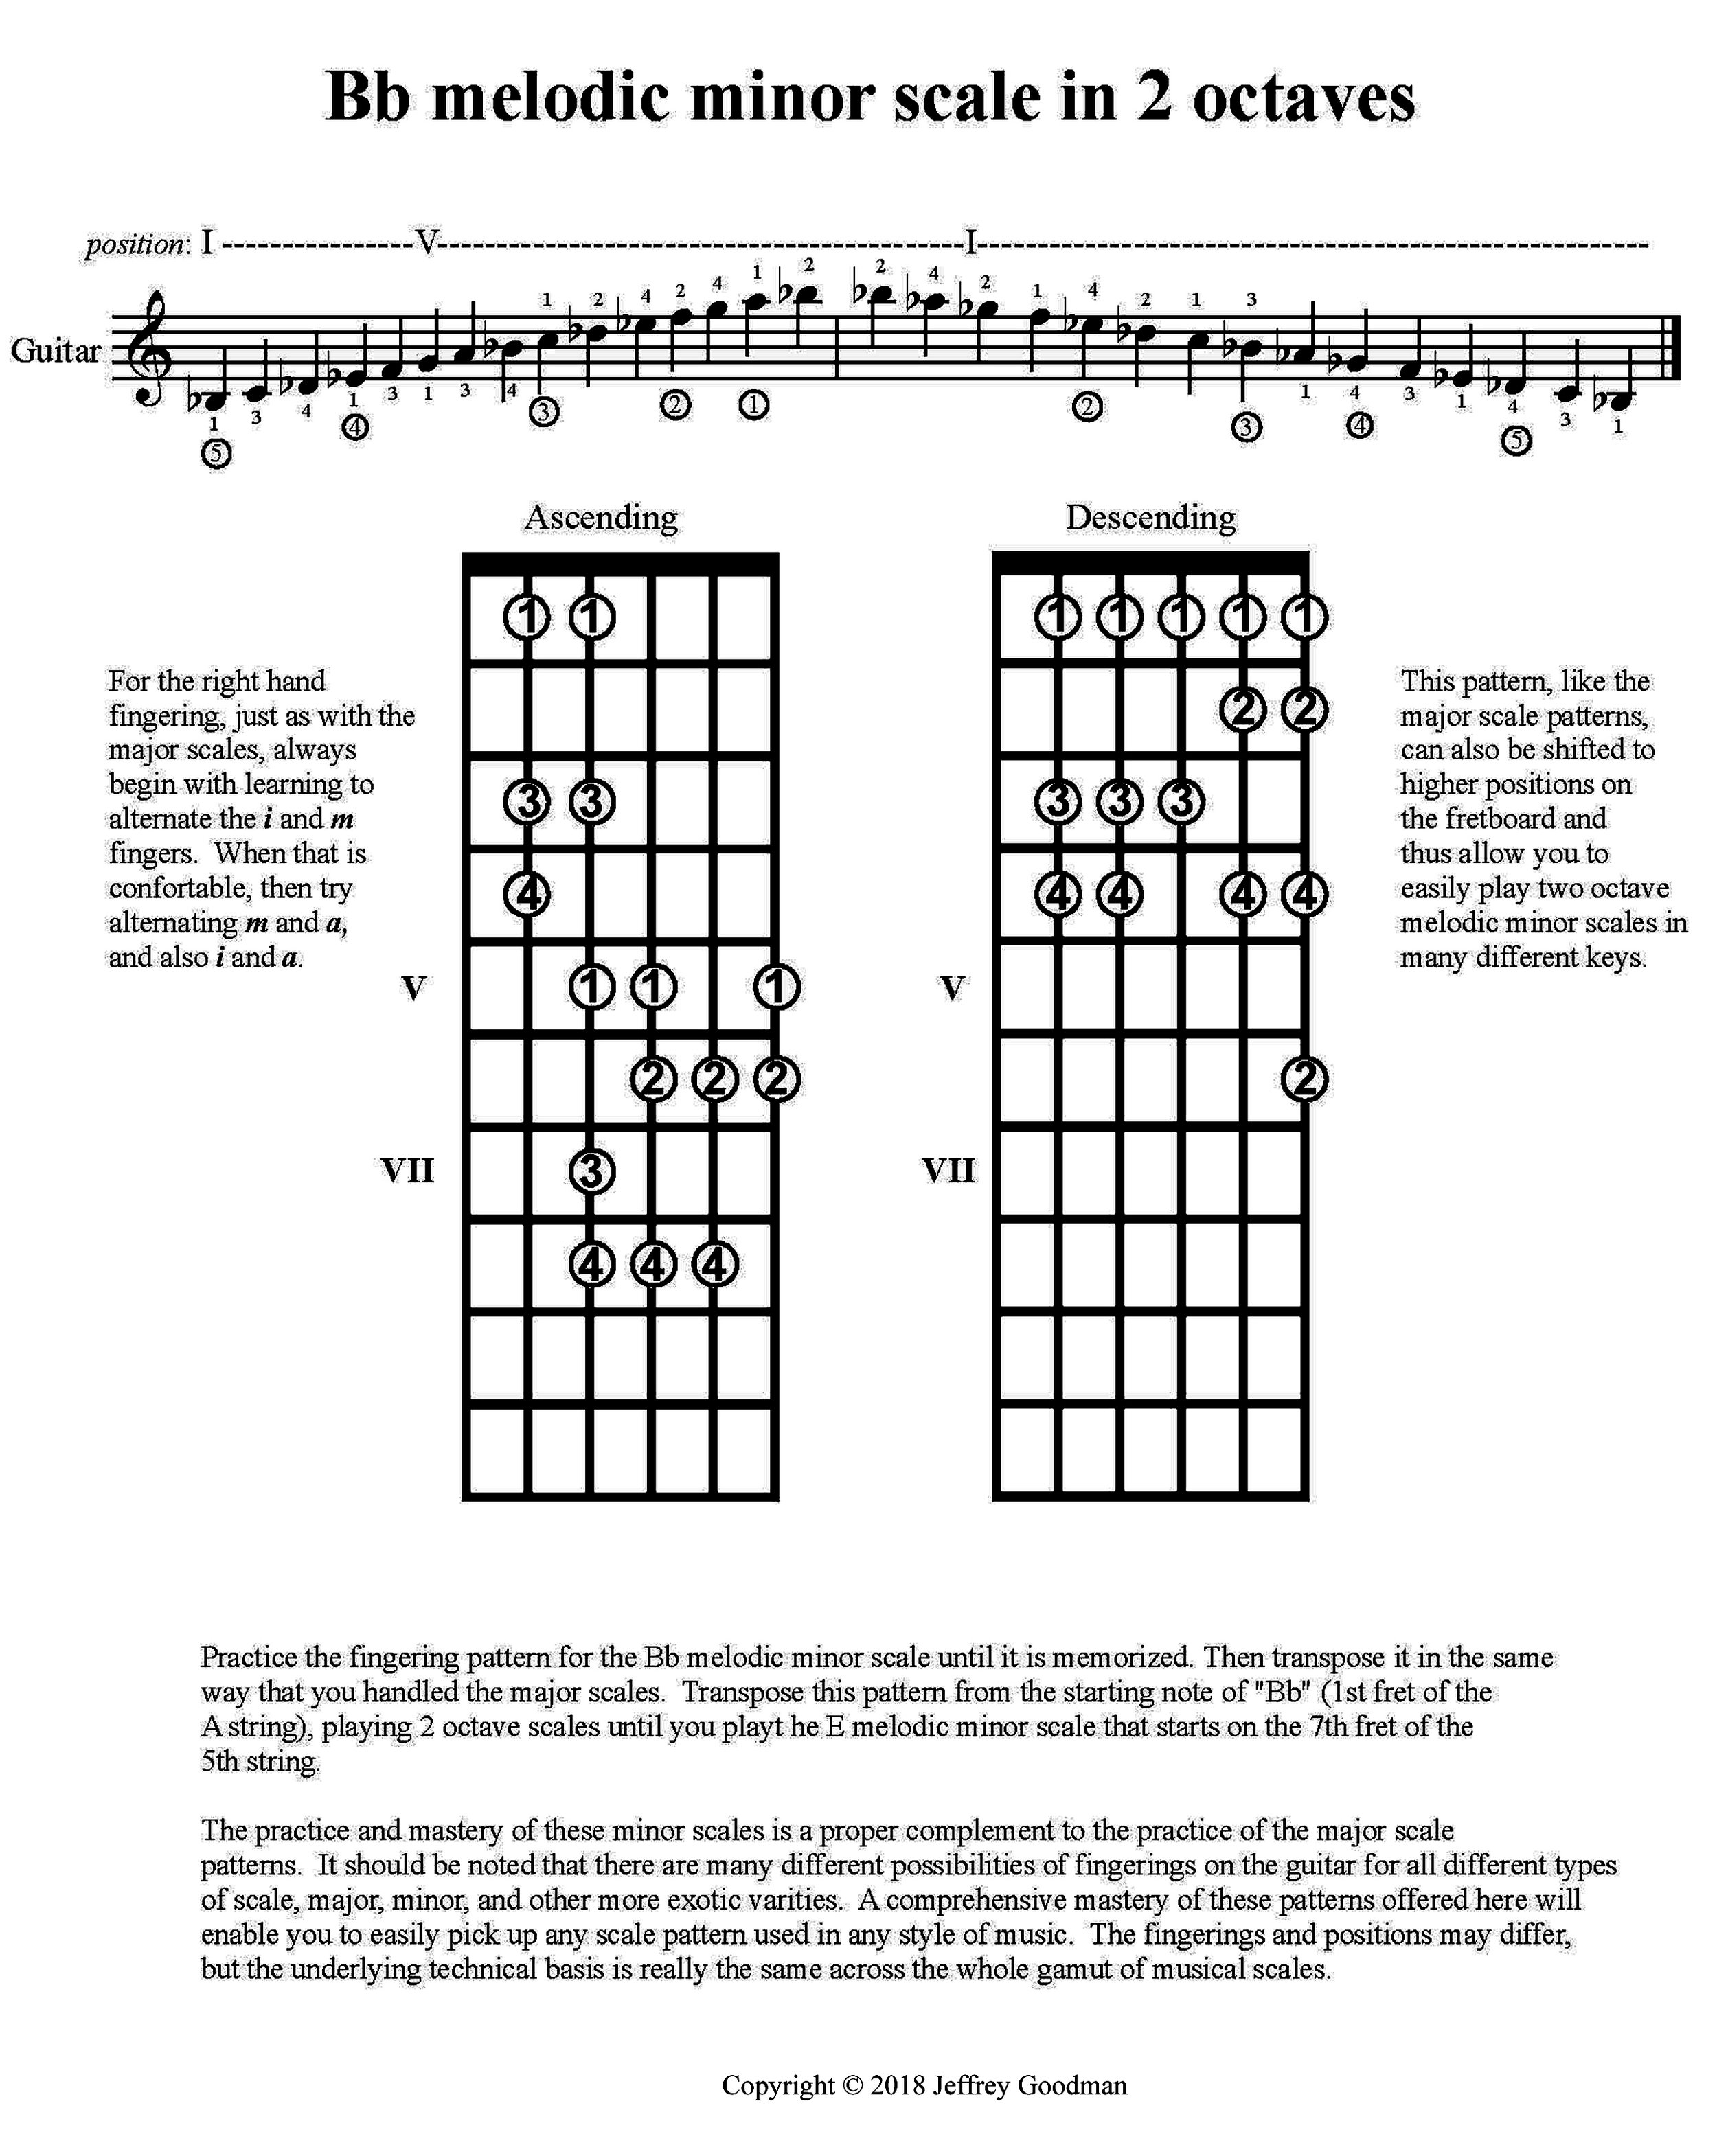 Bb minor scale in 2 octaves edited for JGM.jpg